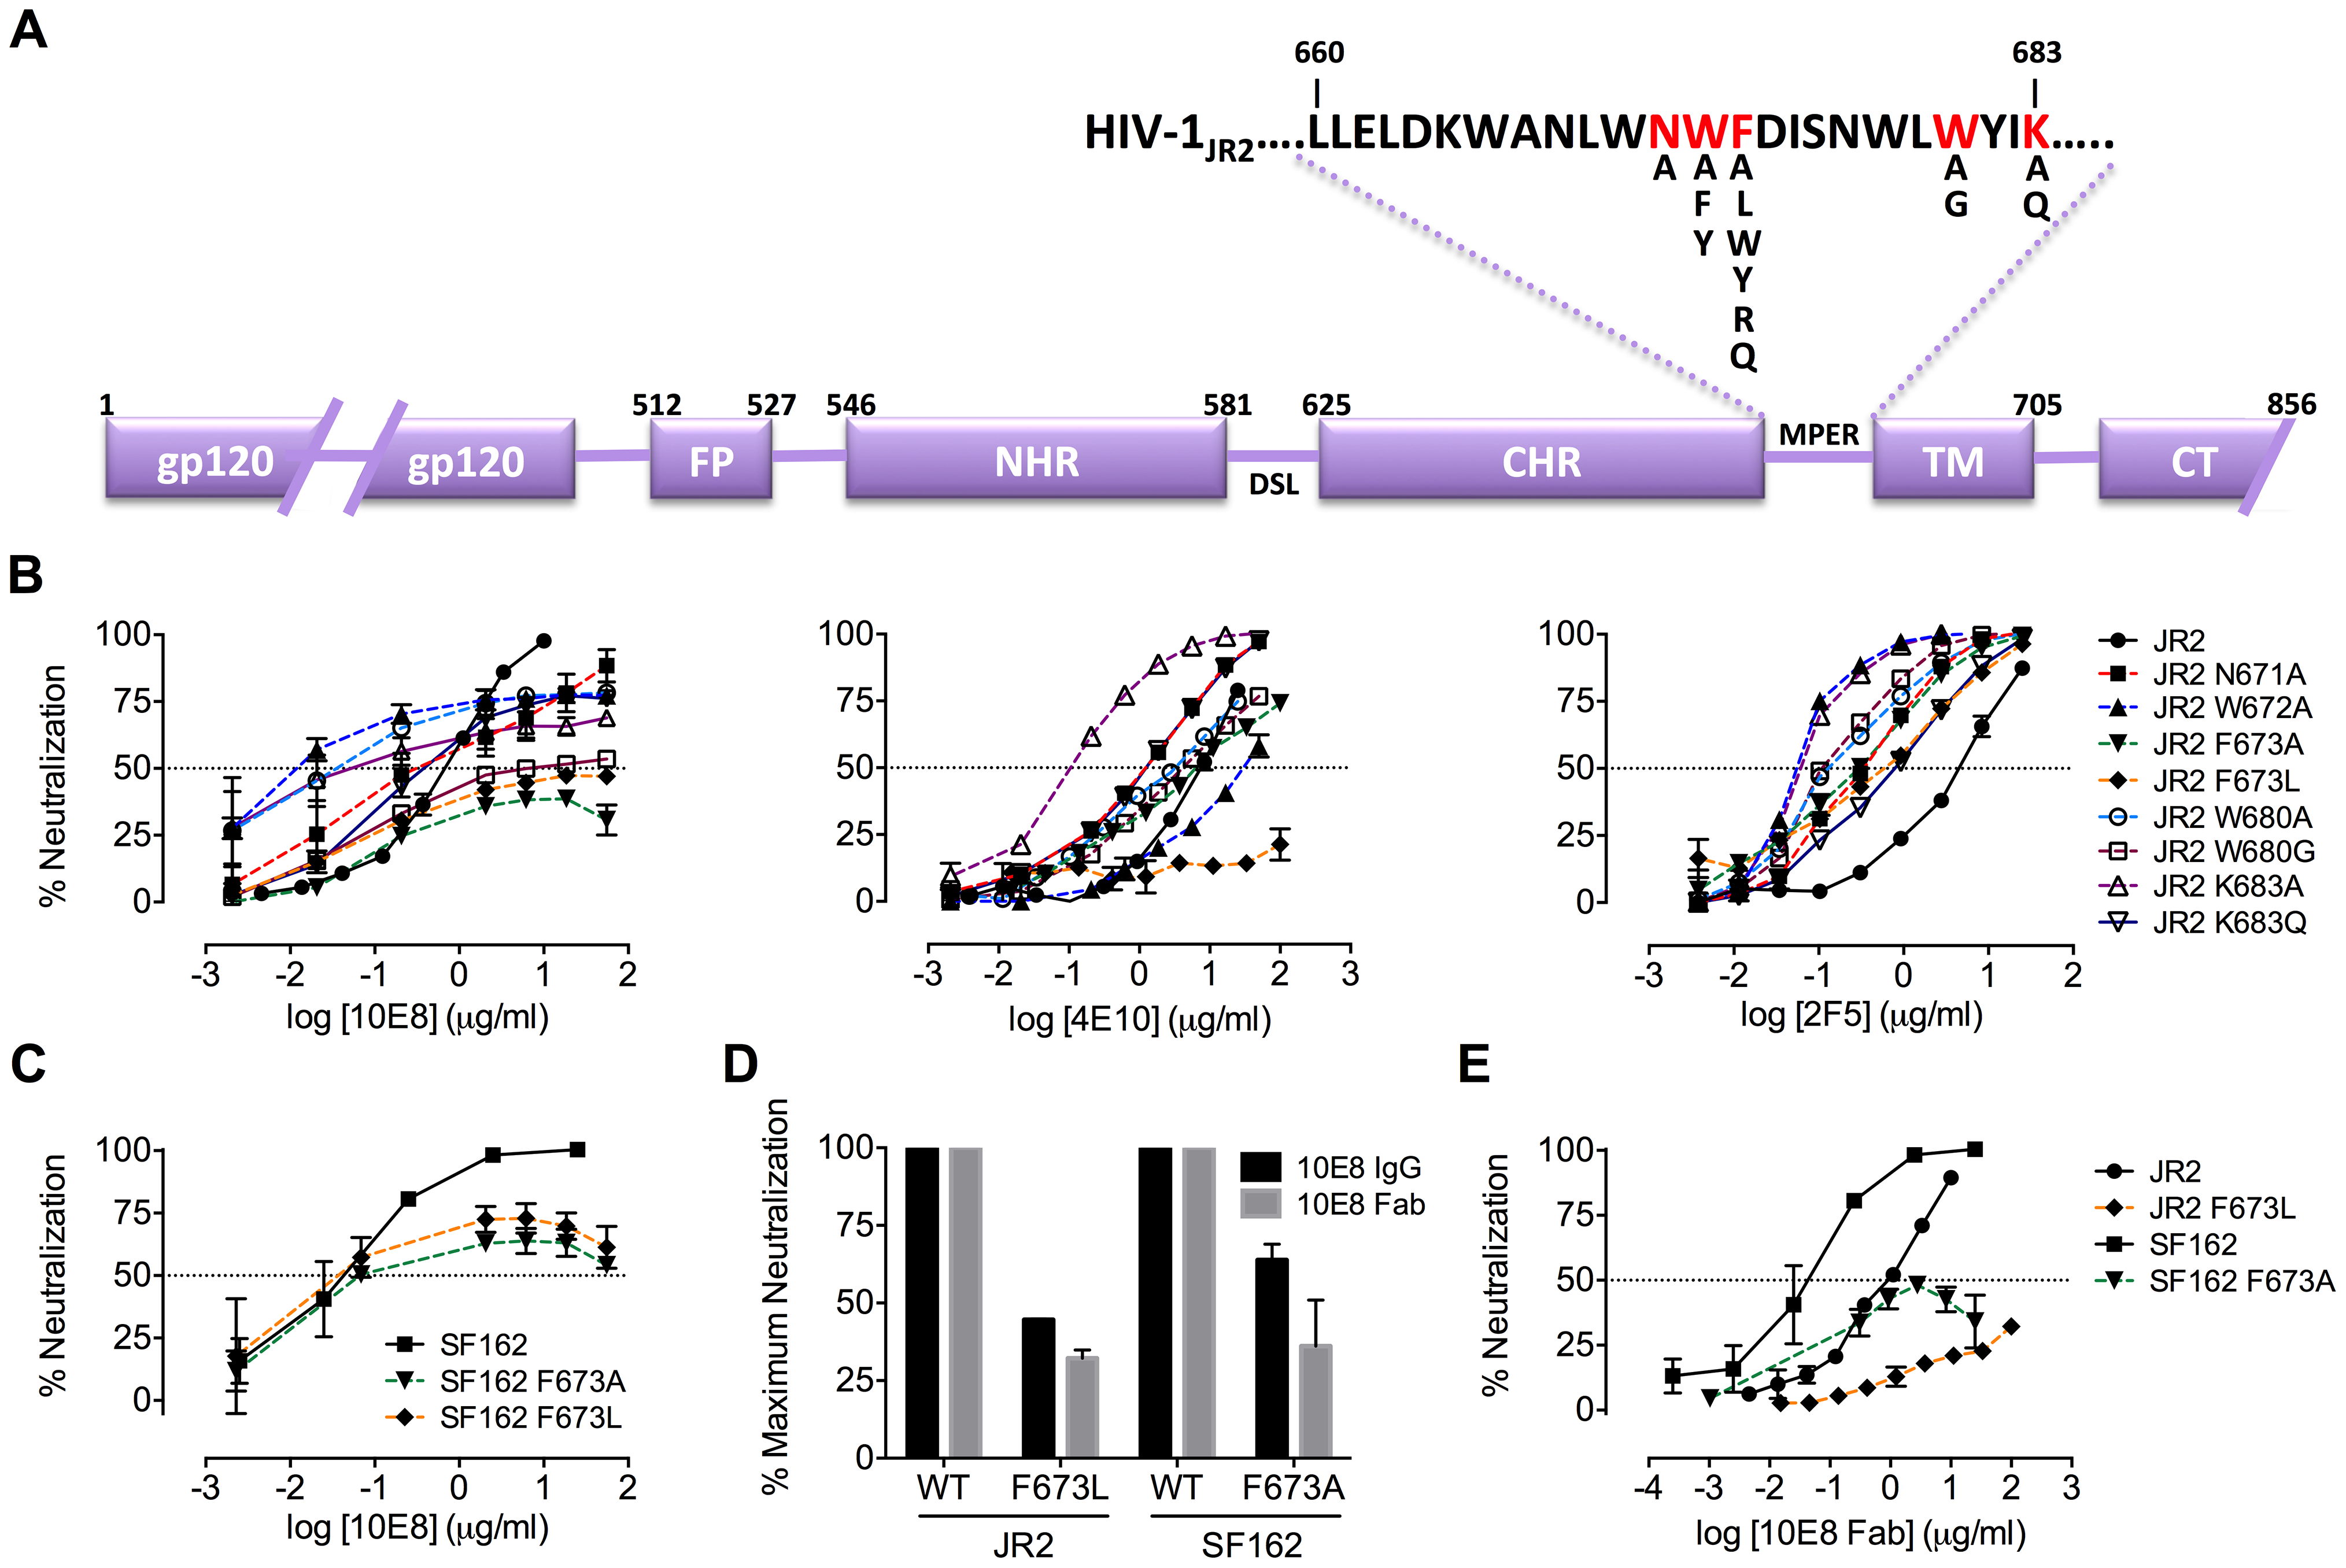 Partial neutralization of HIV-1 JR2, SF162 and corresponding MPER mutants by 10E8.